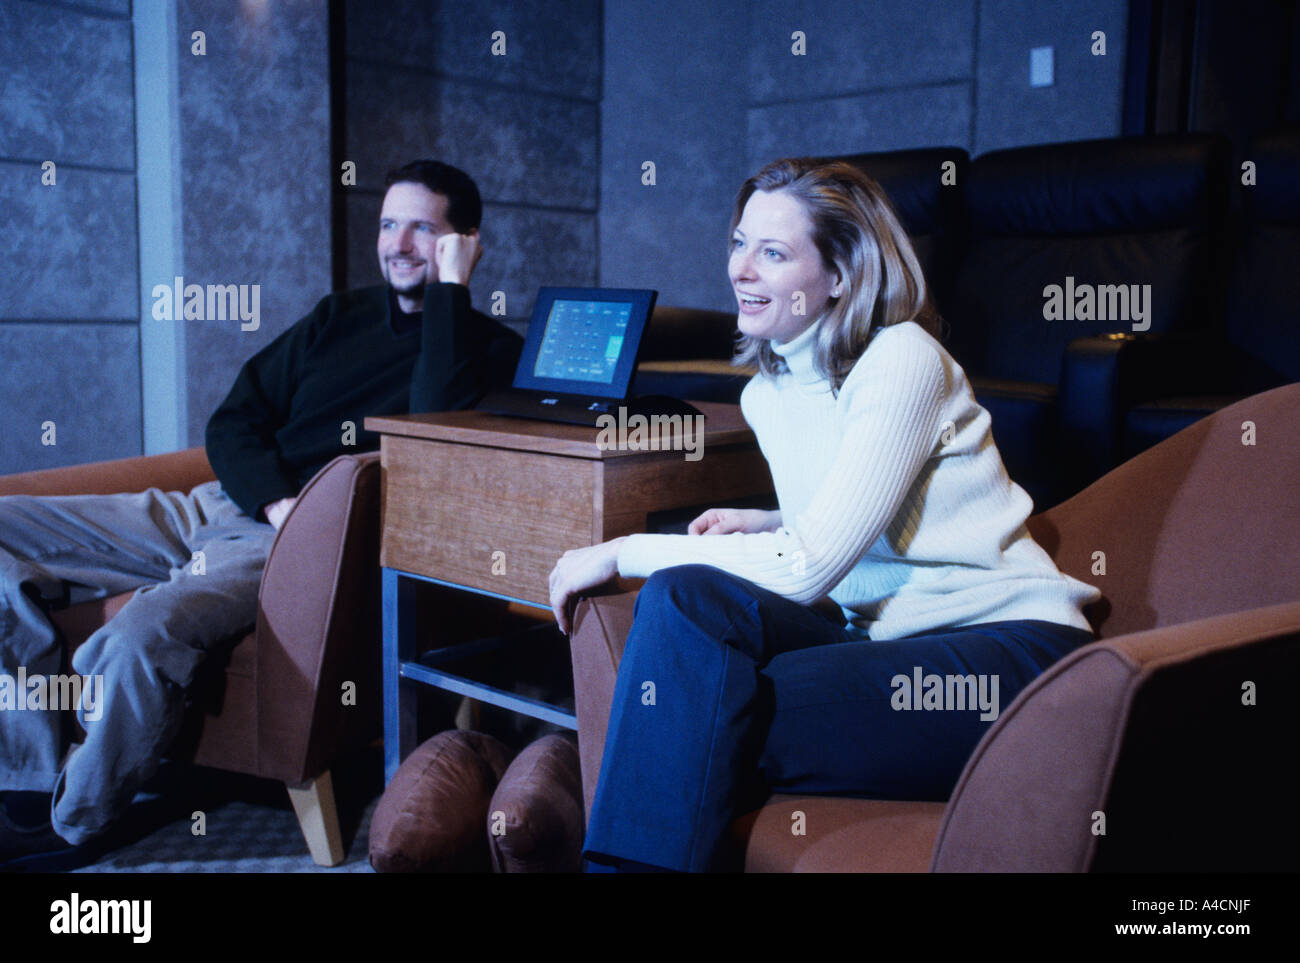 Couple watching home theater - Stock Image